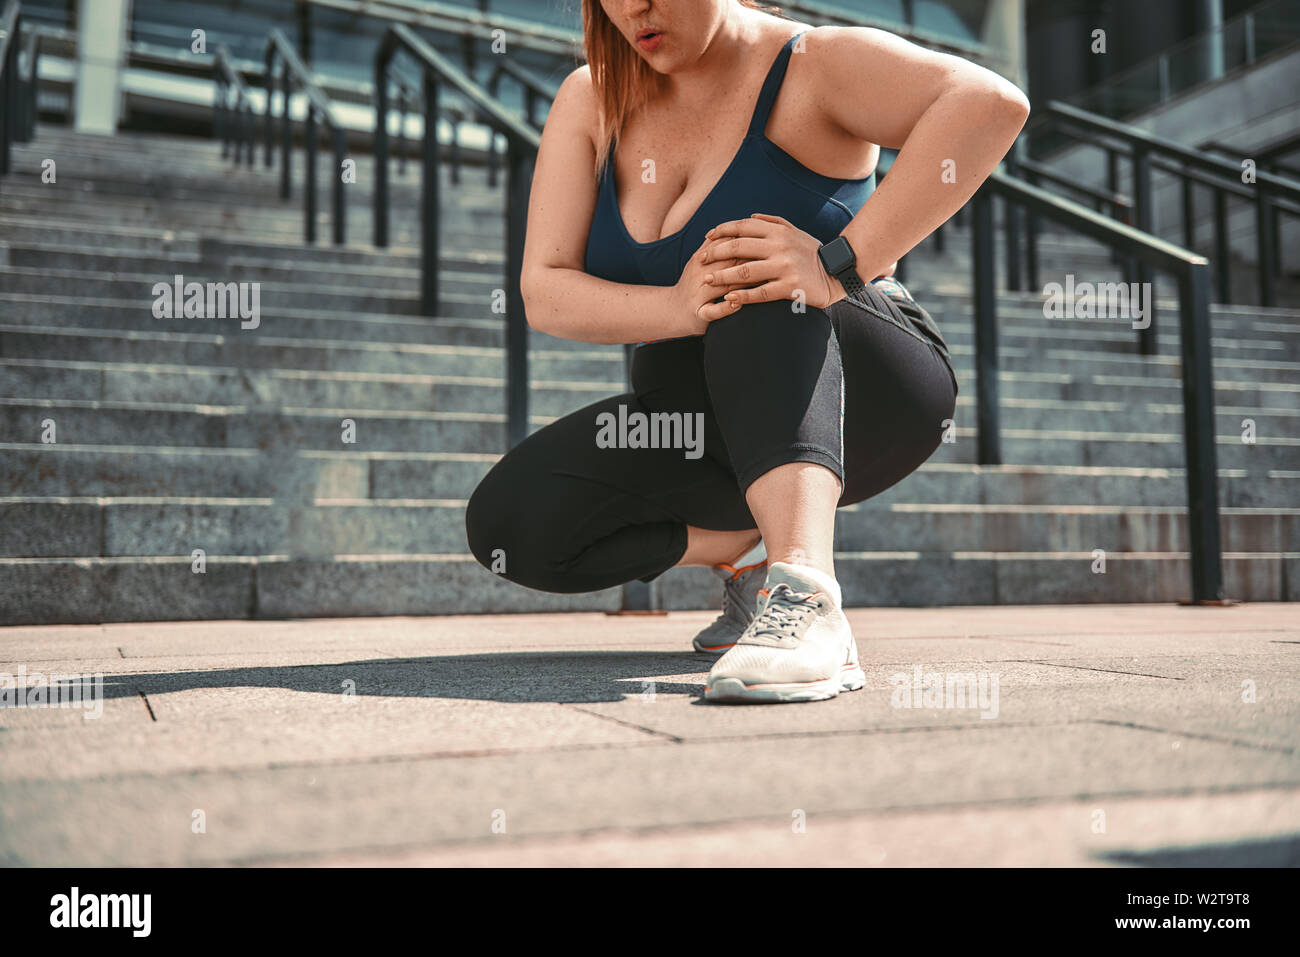 Feeling pain. Young plus size woman in sport clothes suffering from knee pain while standing on stairs. Sports injury. Weight losing. - Stock Image